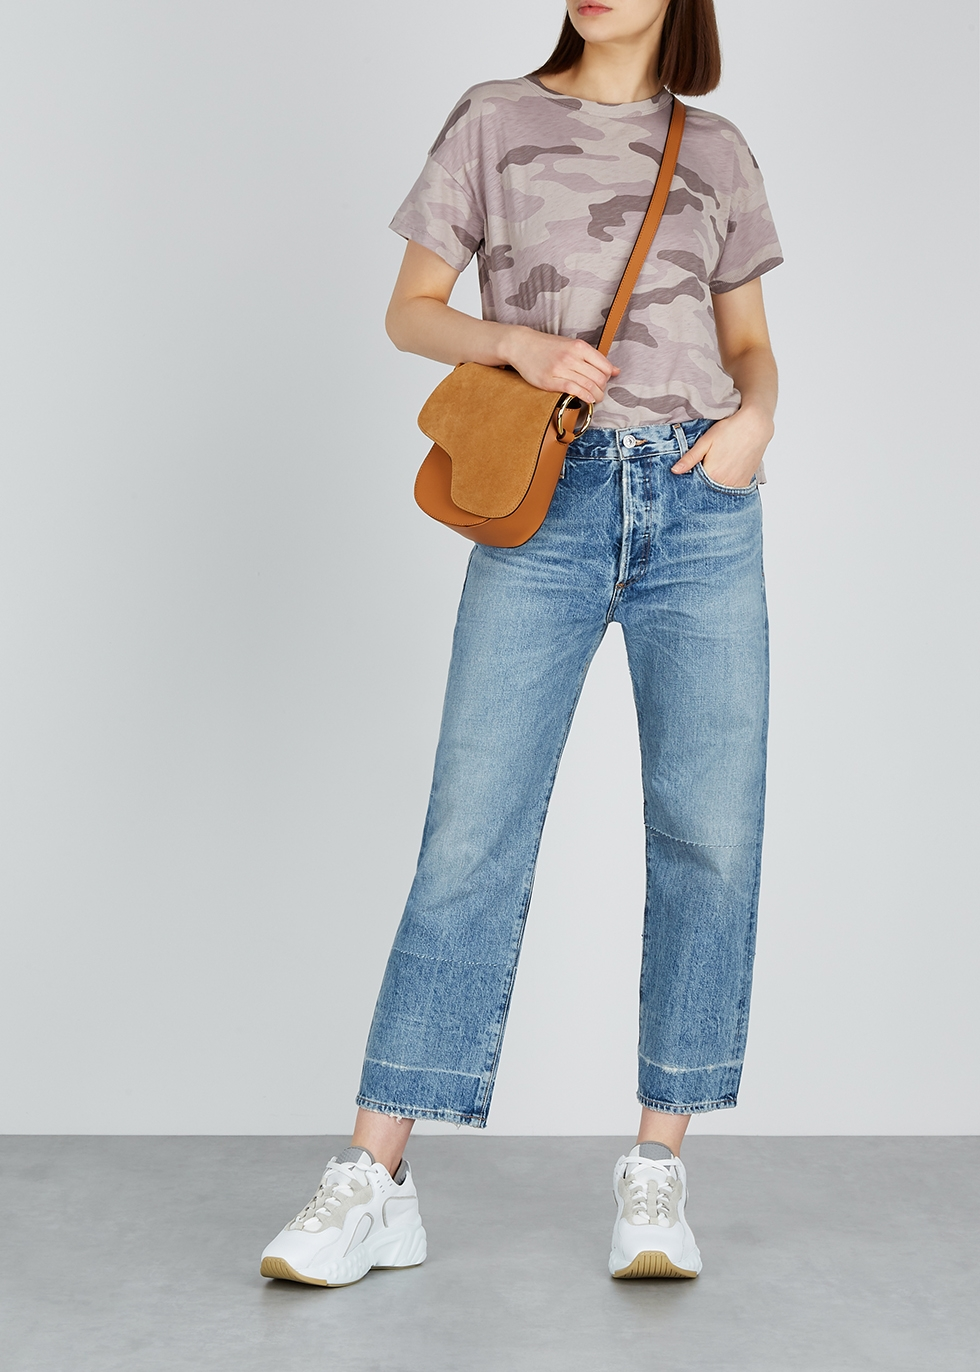 Emery blue boyfriend jeans - Citizens of Humanity